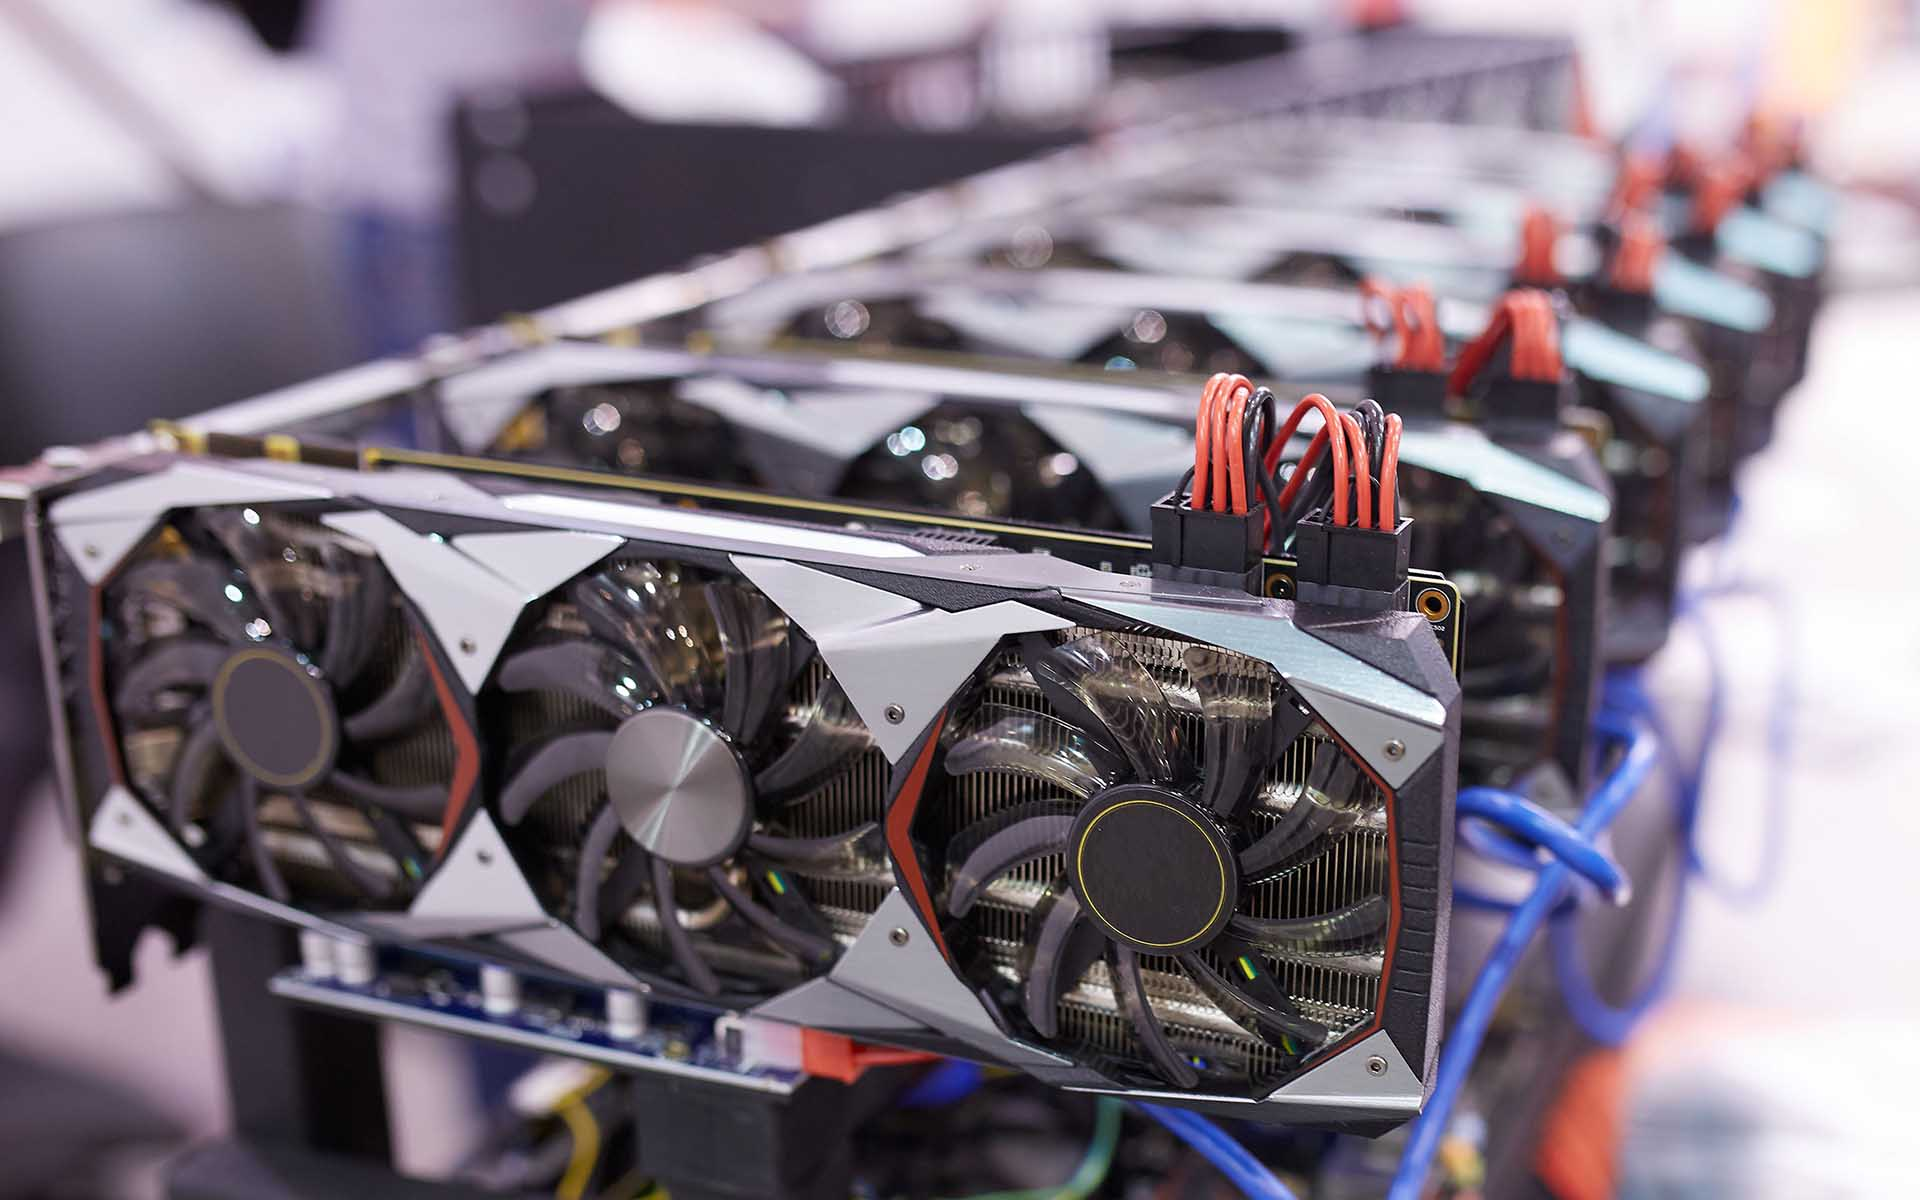 Cryptocurrency mining rigs